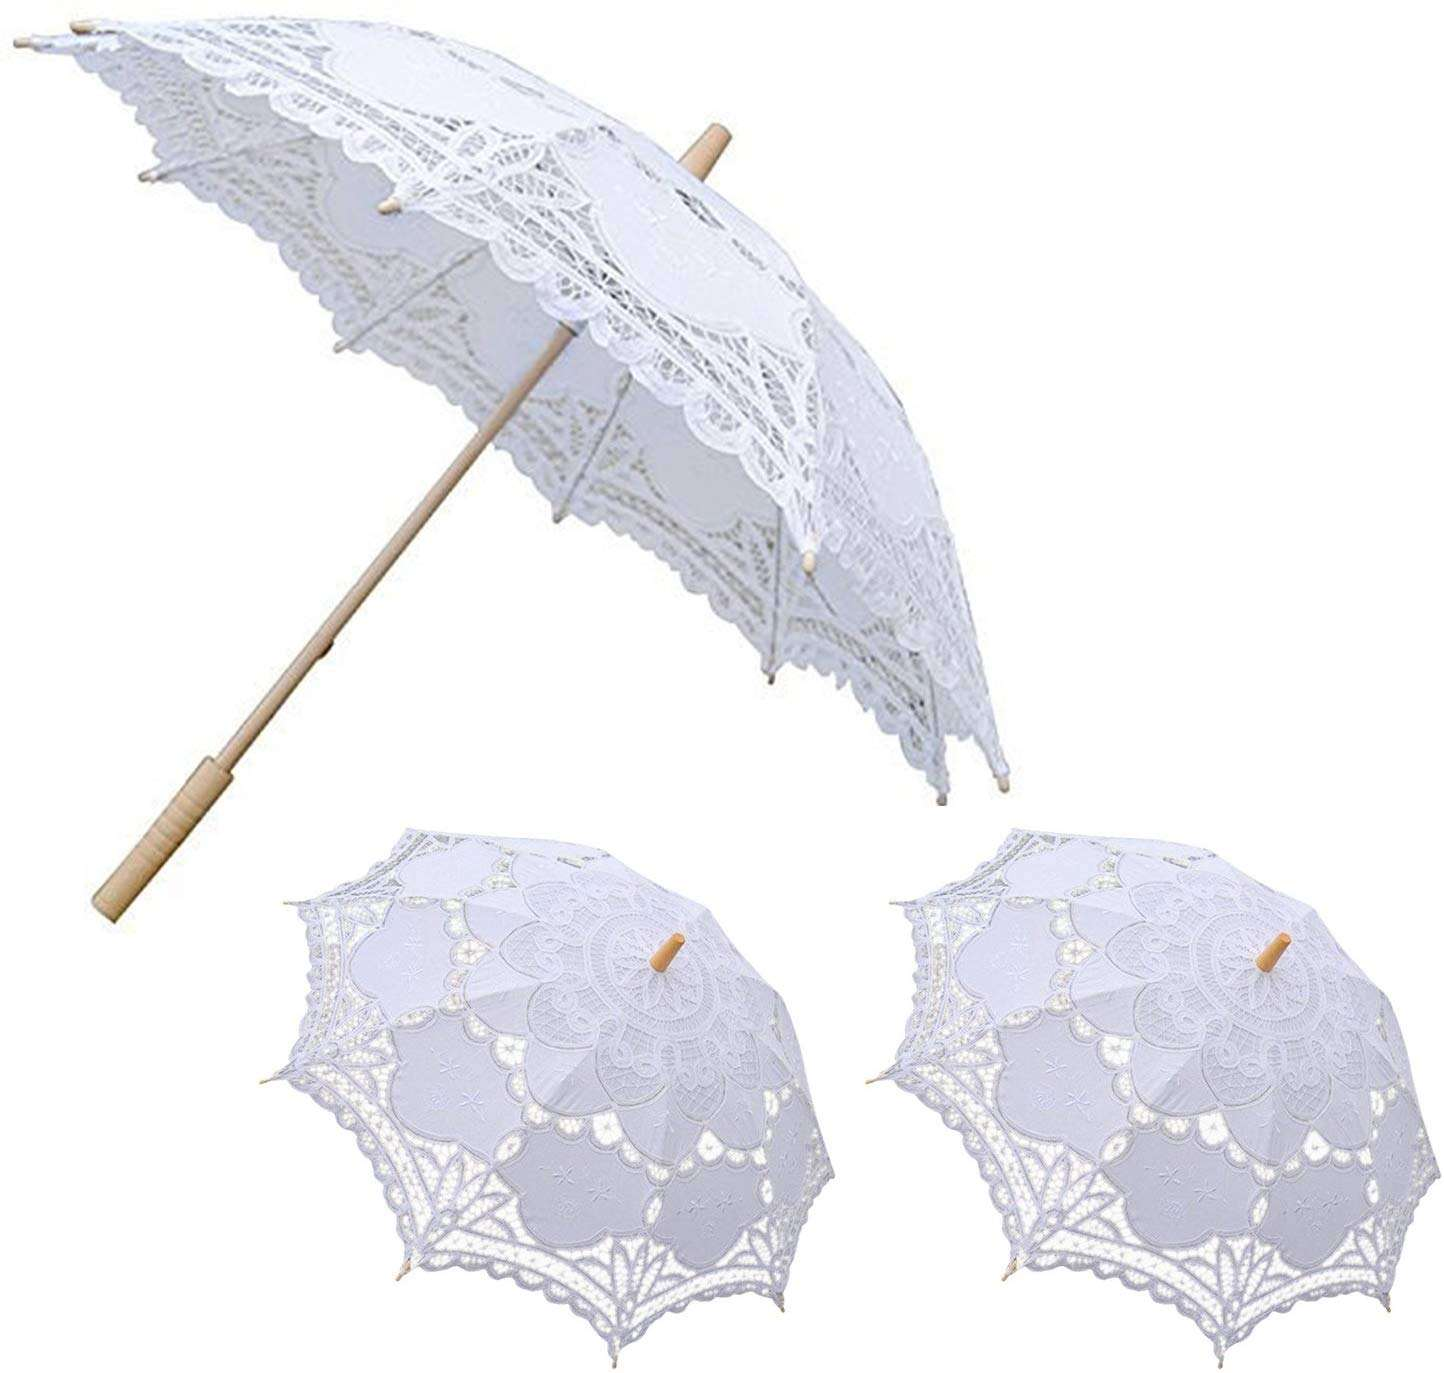 Amazon Hot Sale New Products White Lace Parasol Wood Handle Wedding Umbrellas for Photography Travel